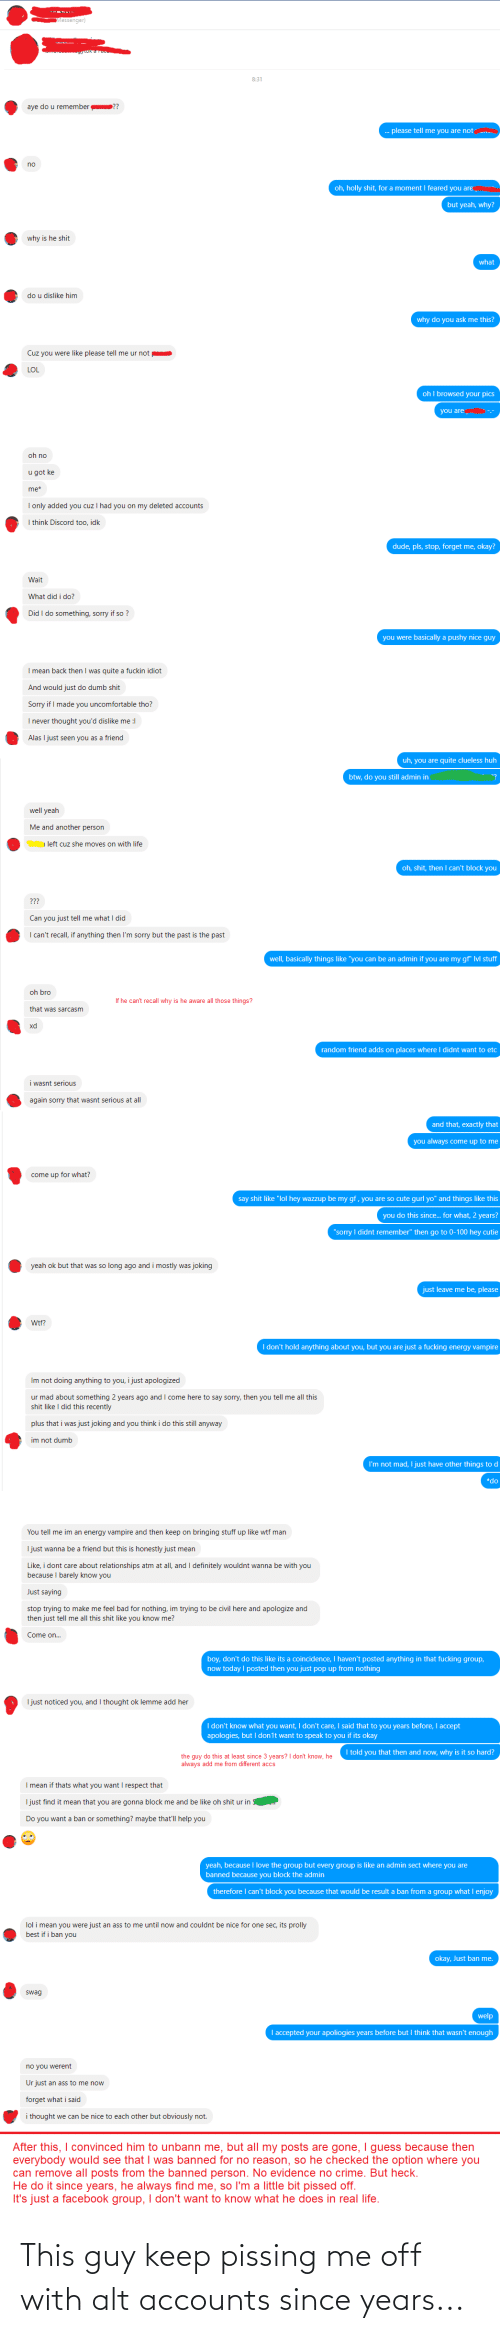 Alt Accounts: This guy keep pissing me off with alt accounts since years...